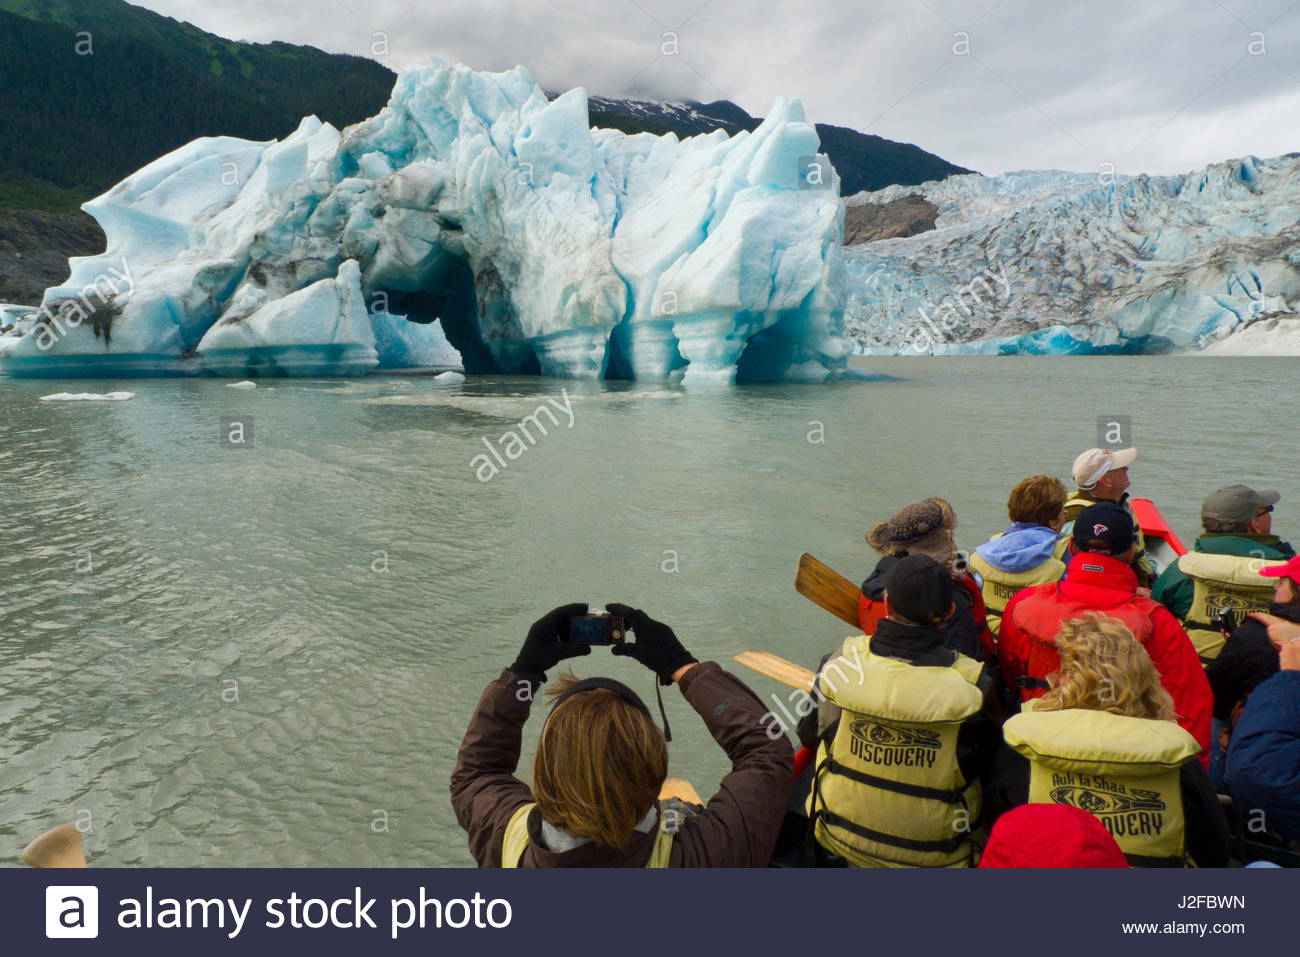 Group of tourist on a large fiberglass canoe on Mendenhall Lake looking at Mendenhall Glacier, Tongass National - Stock Image